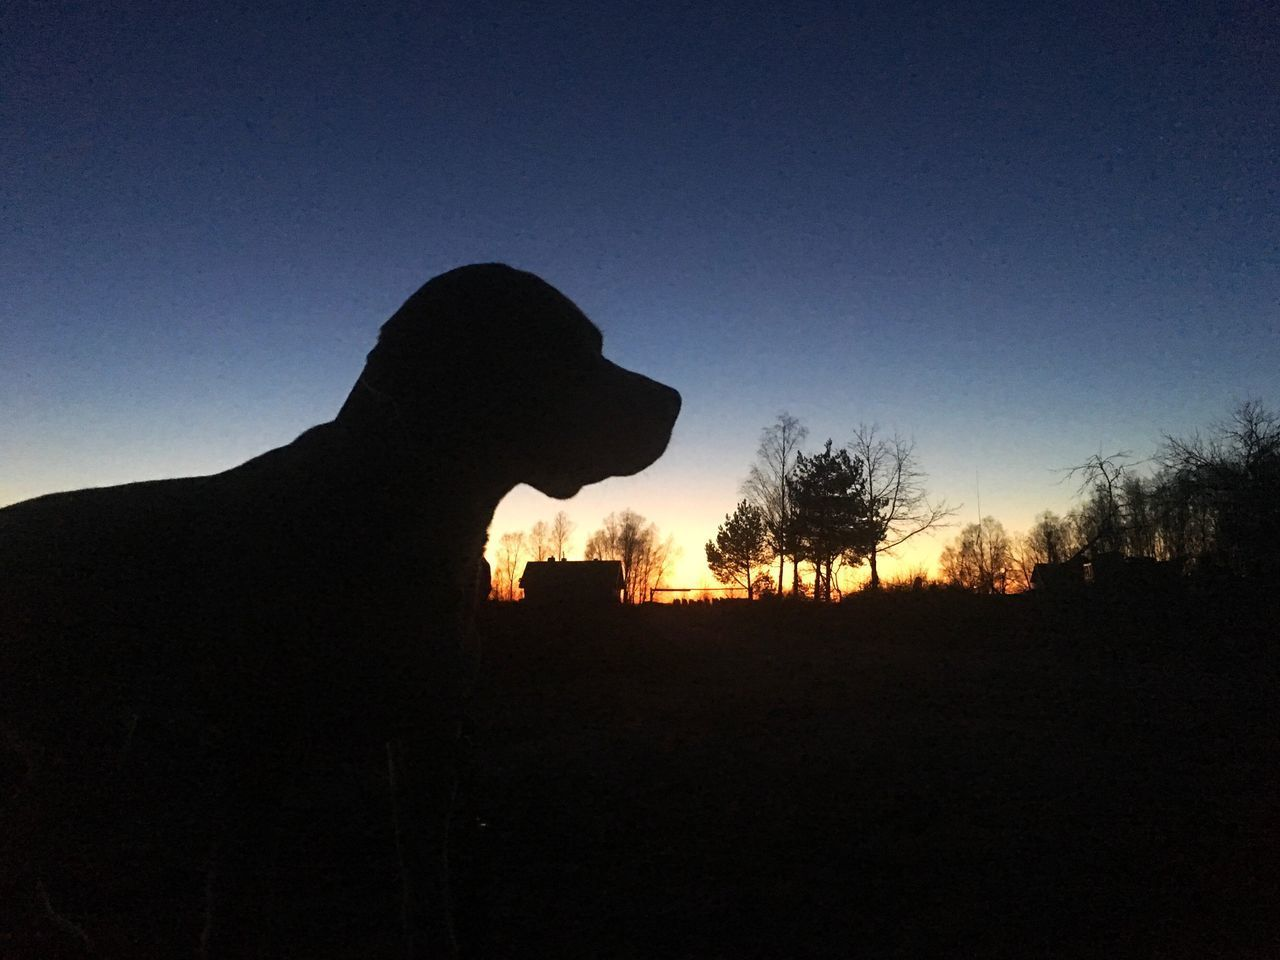 Silhouette Sunset Clear Sky Outdoors Sky Nature Evening Evening Sky Silhouettes Nature Standing Dog Domestic Animals No People House Beagle Pet Evening Light Silhouette Trees Orange Sky Sunset Break The Mold